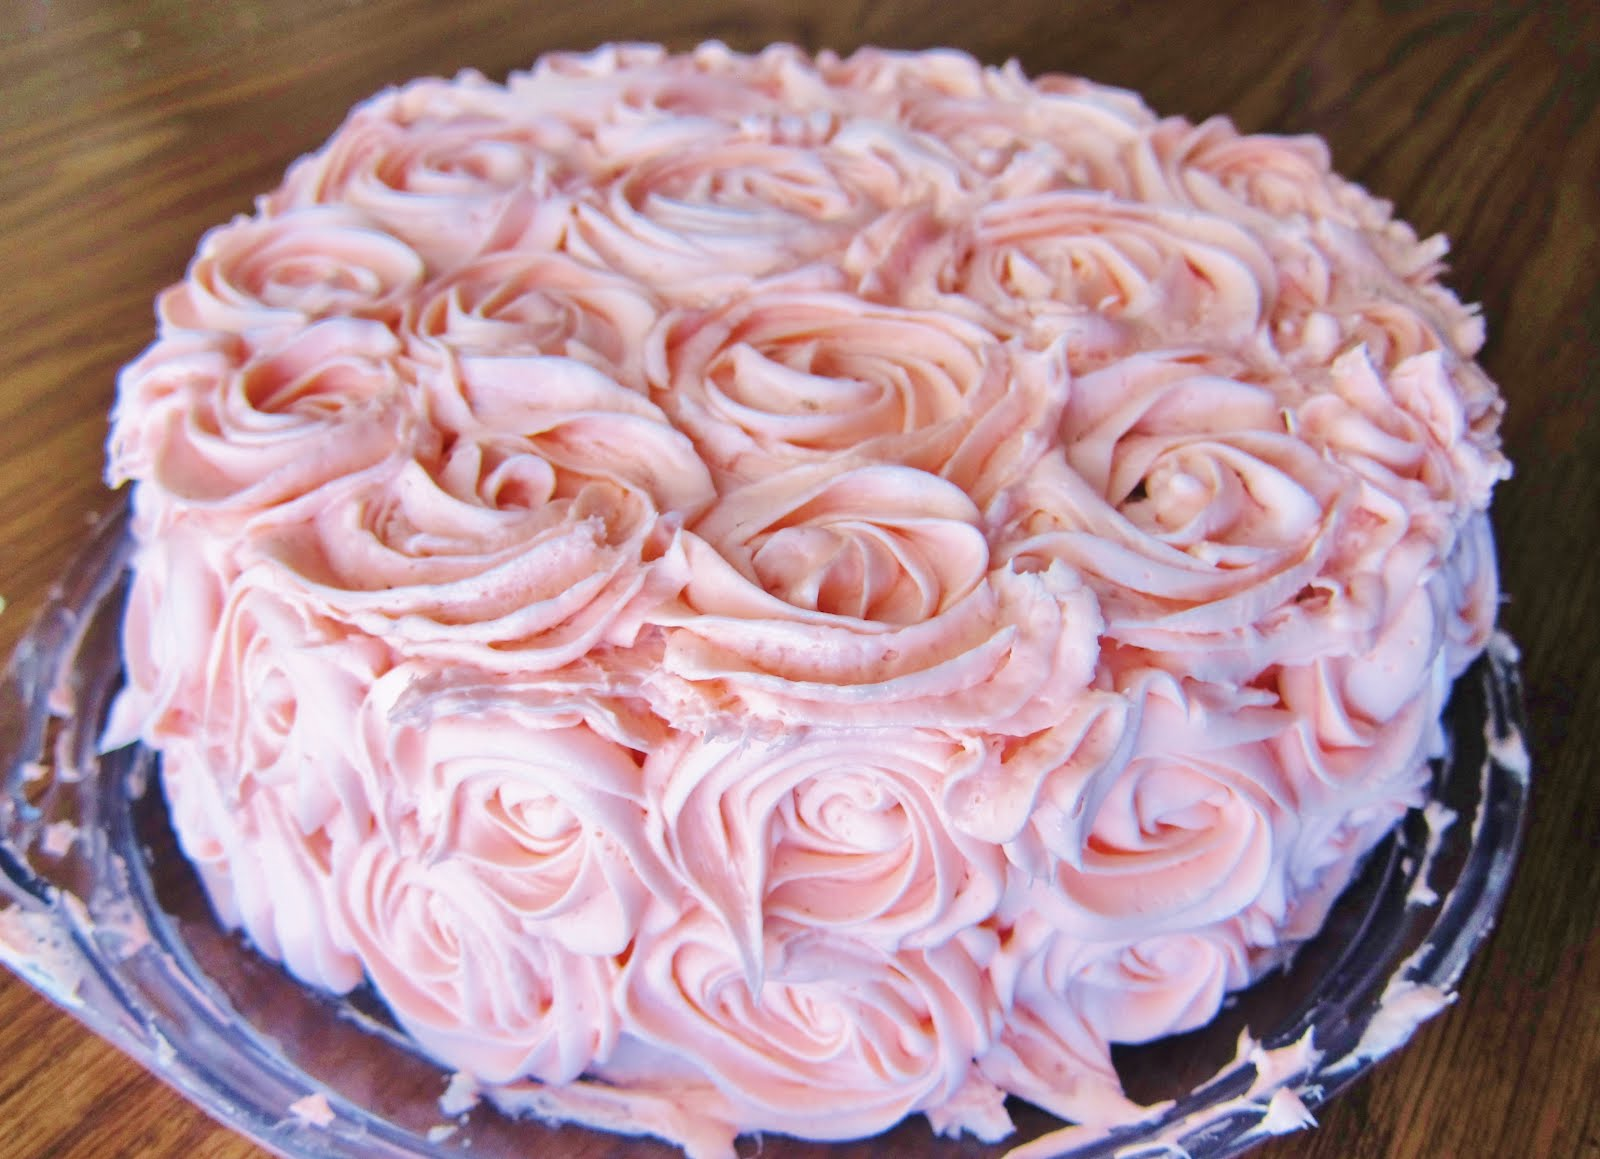 Ice Cream Cake Icing Recipes: Easy Whipped Cream Frosting